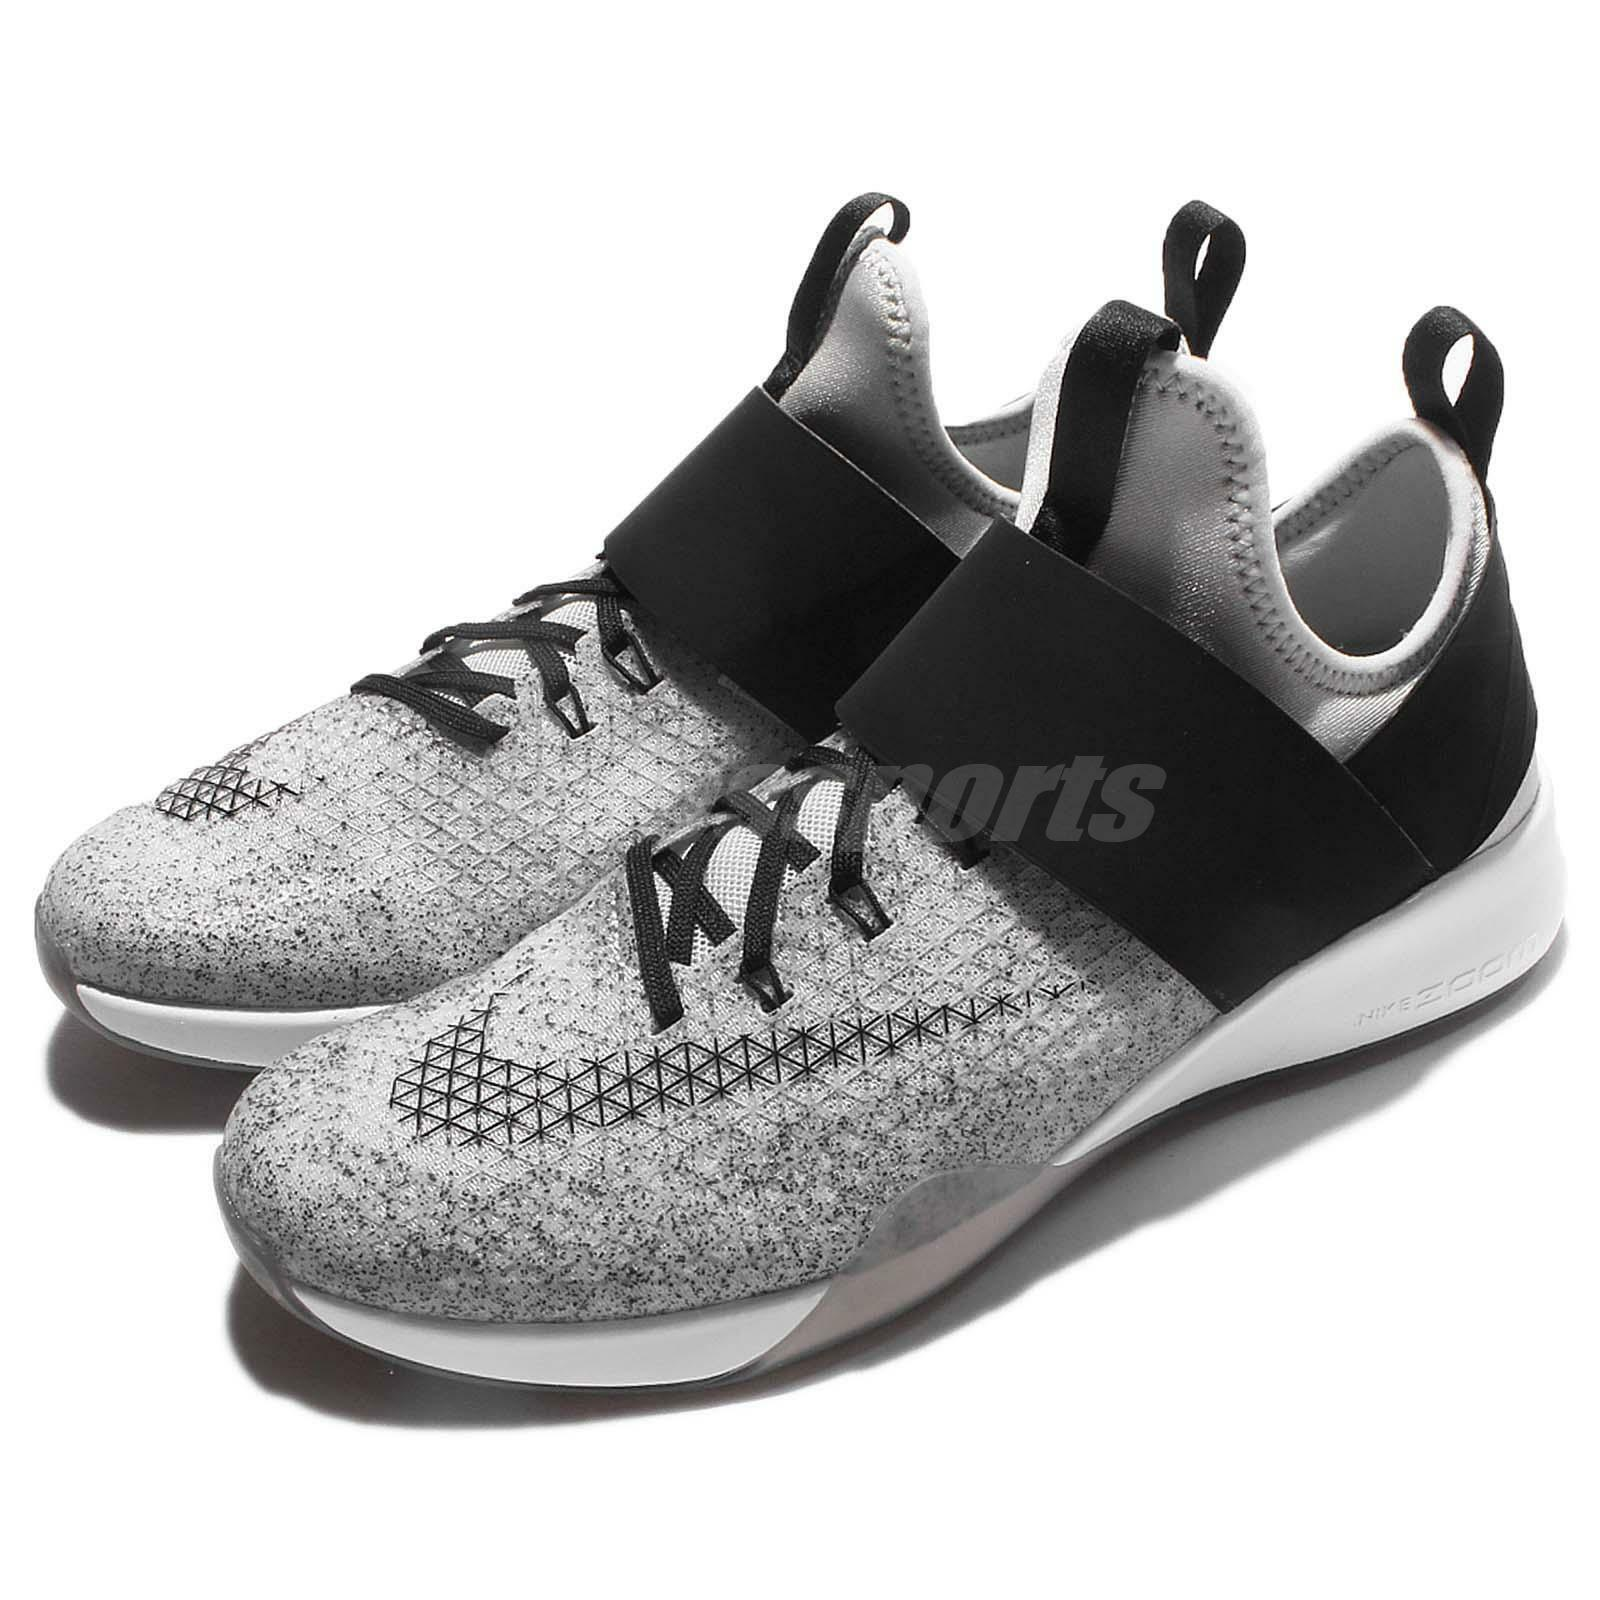 Wmns Nike Air Zoom Zoom Zoom fuerte gris Negro para Mujeres Training zapatos Trainers 843975-100 6a44cc